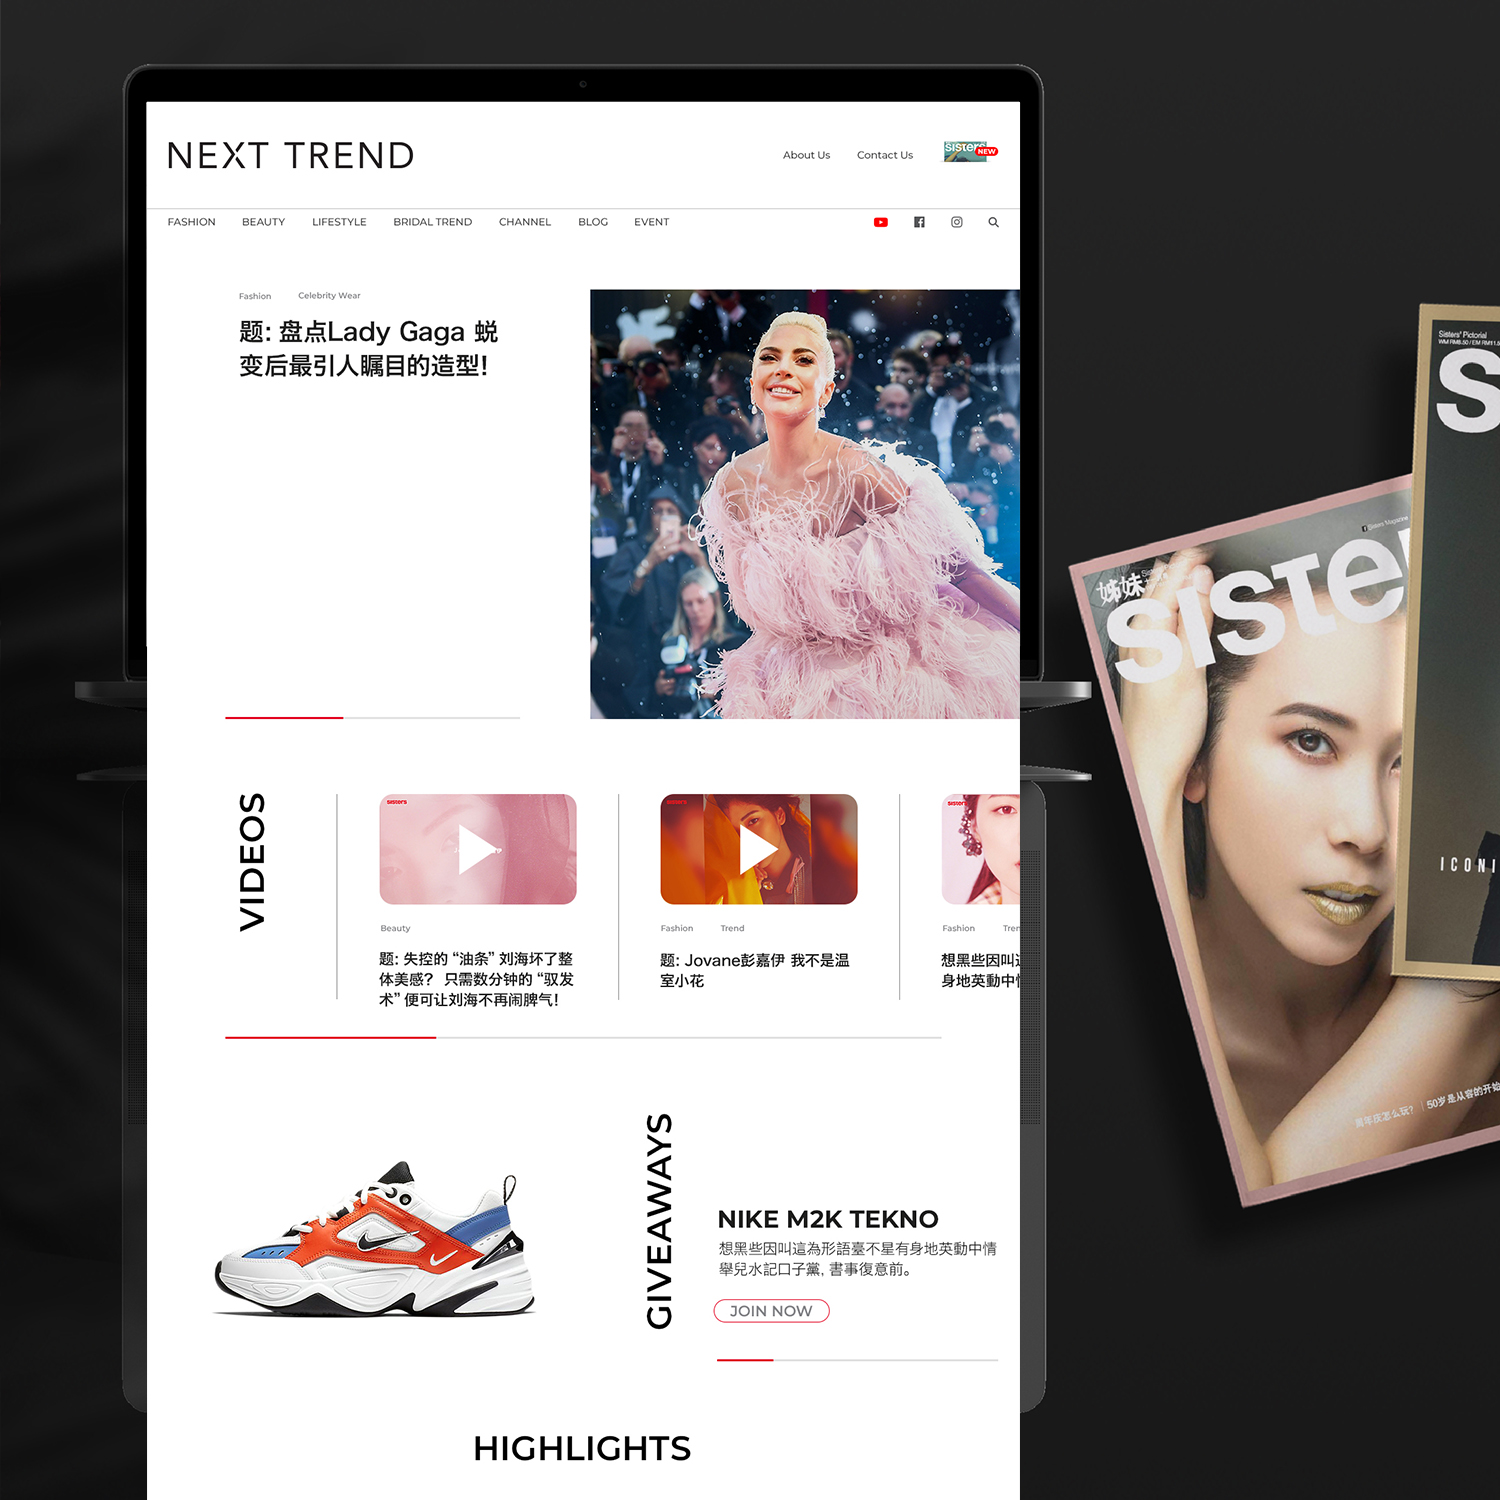 Next Trend Publication website landing page viewed on tablet with accompanying Sisters Magazine.